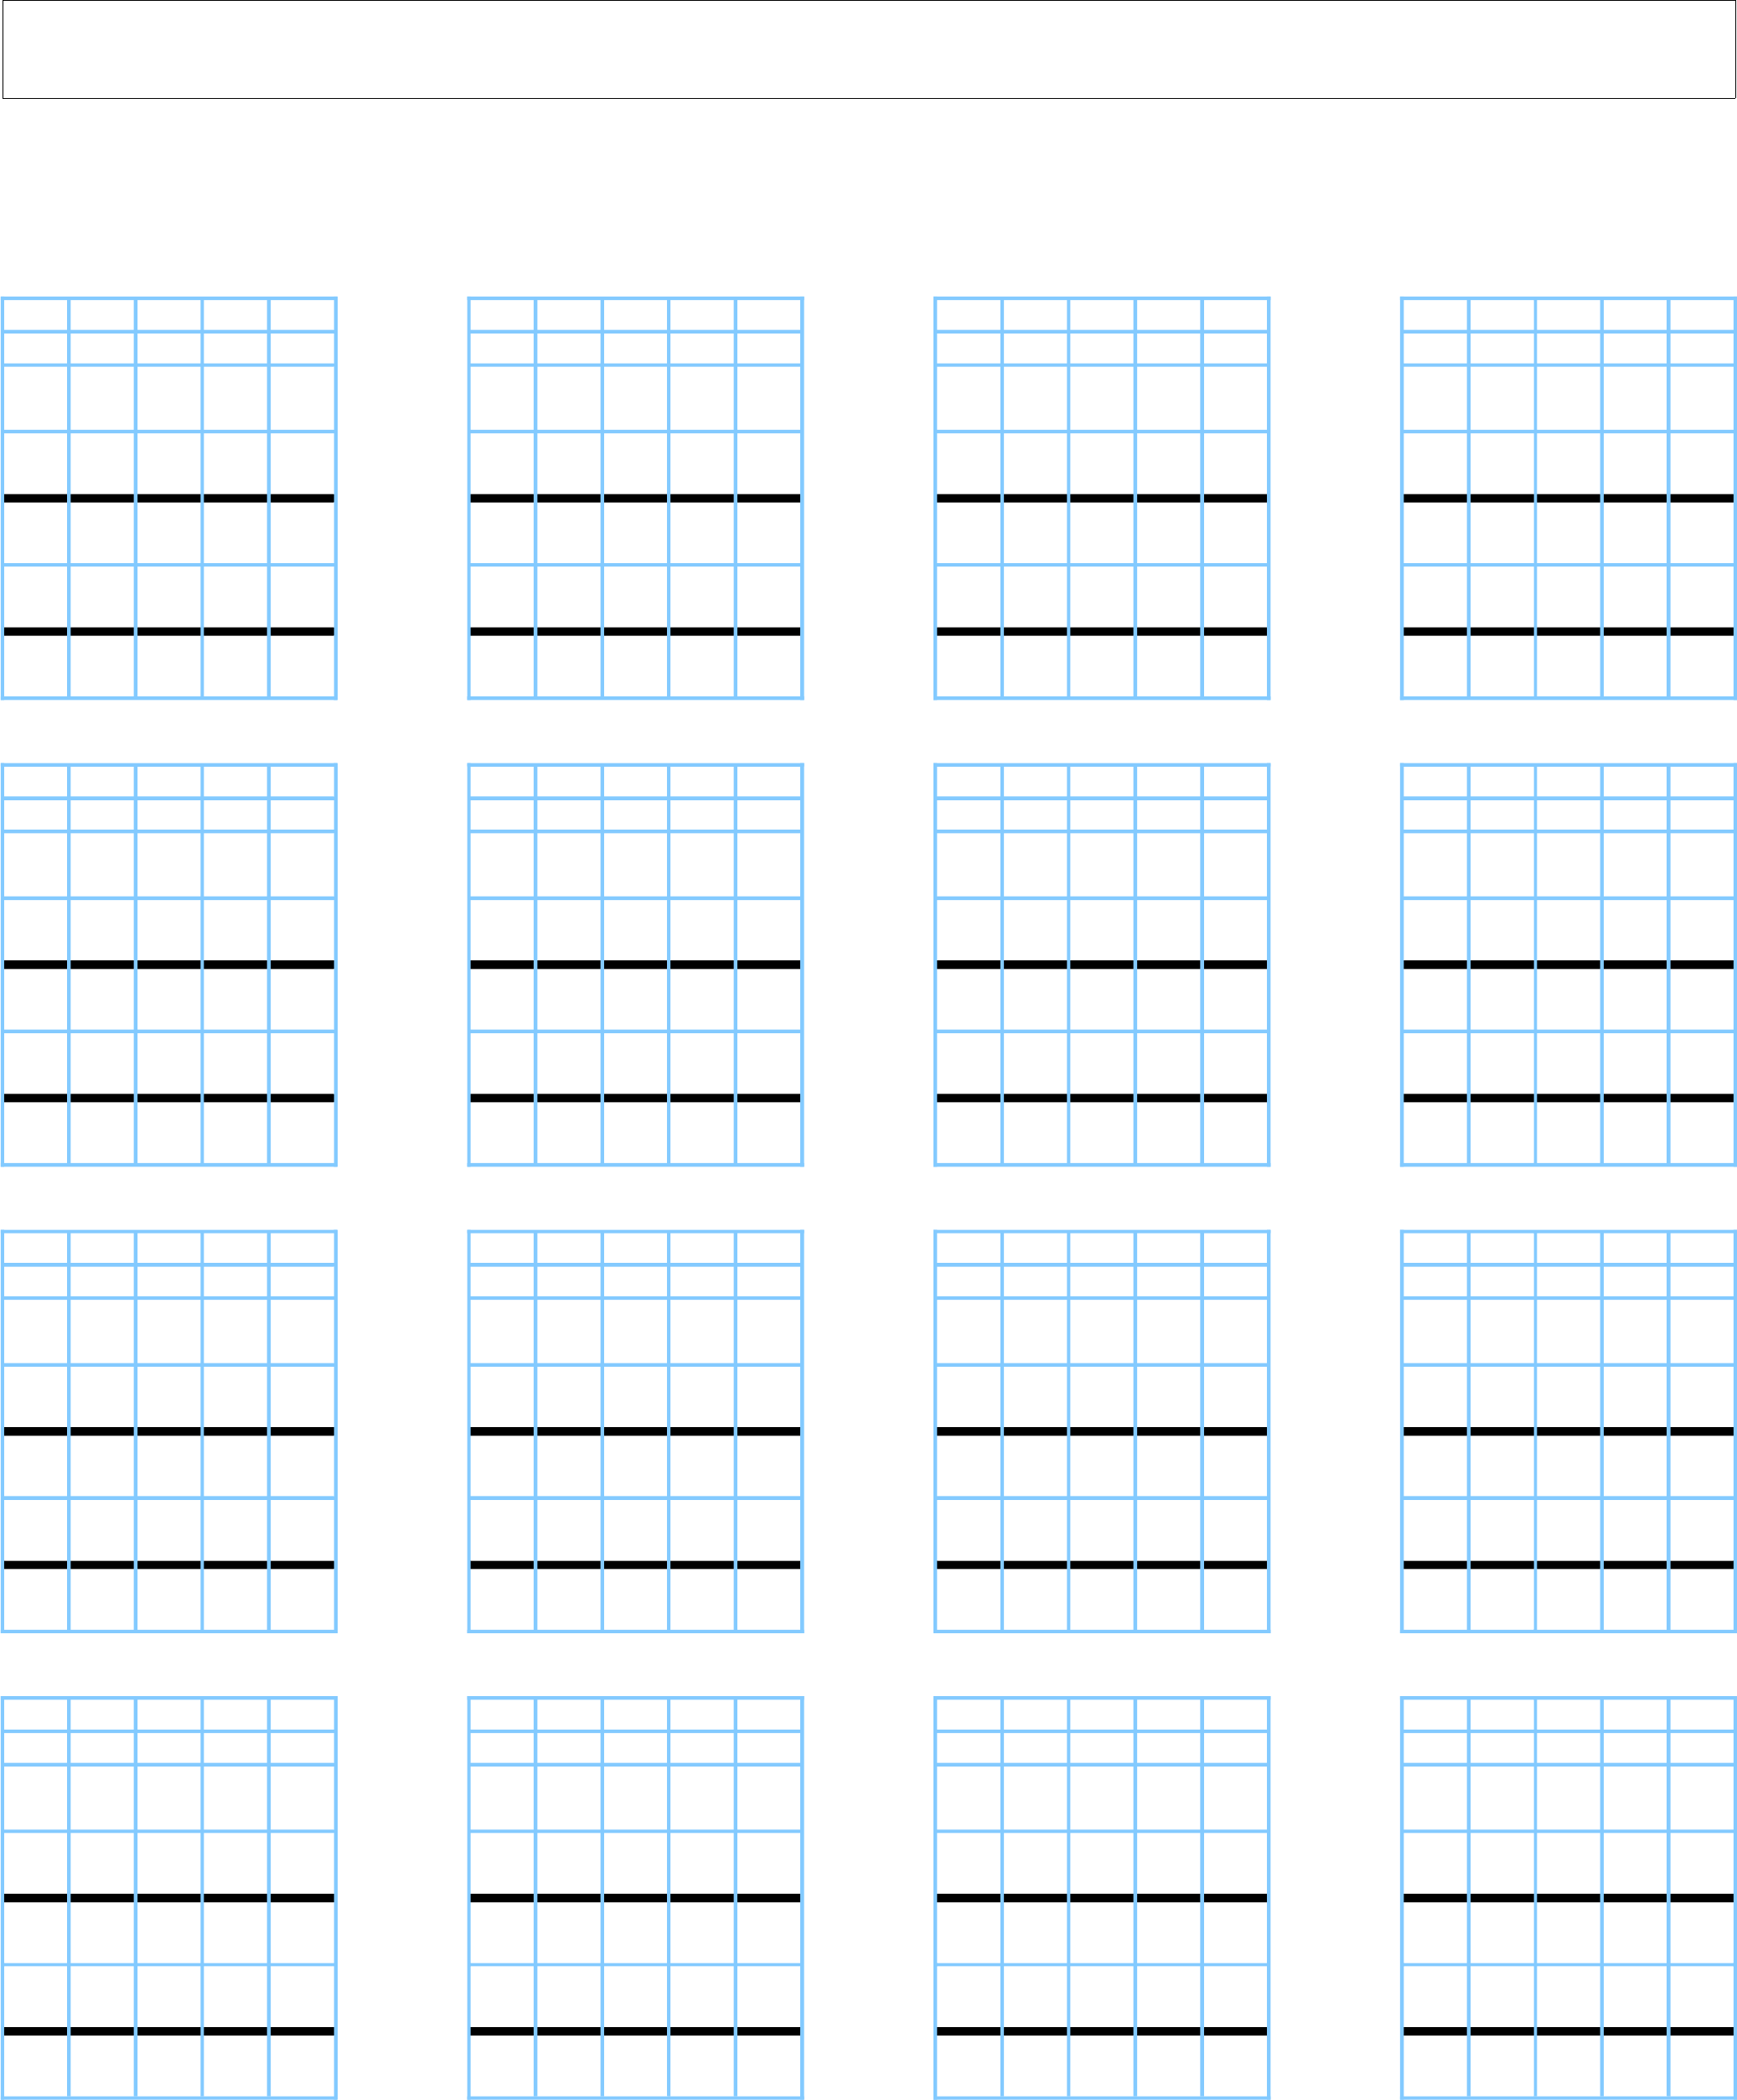 Multiplication Grid Worksheet Ks2 – Multiplication Lattice Method Worksheets